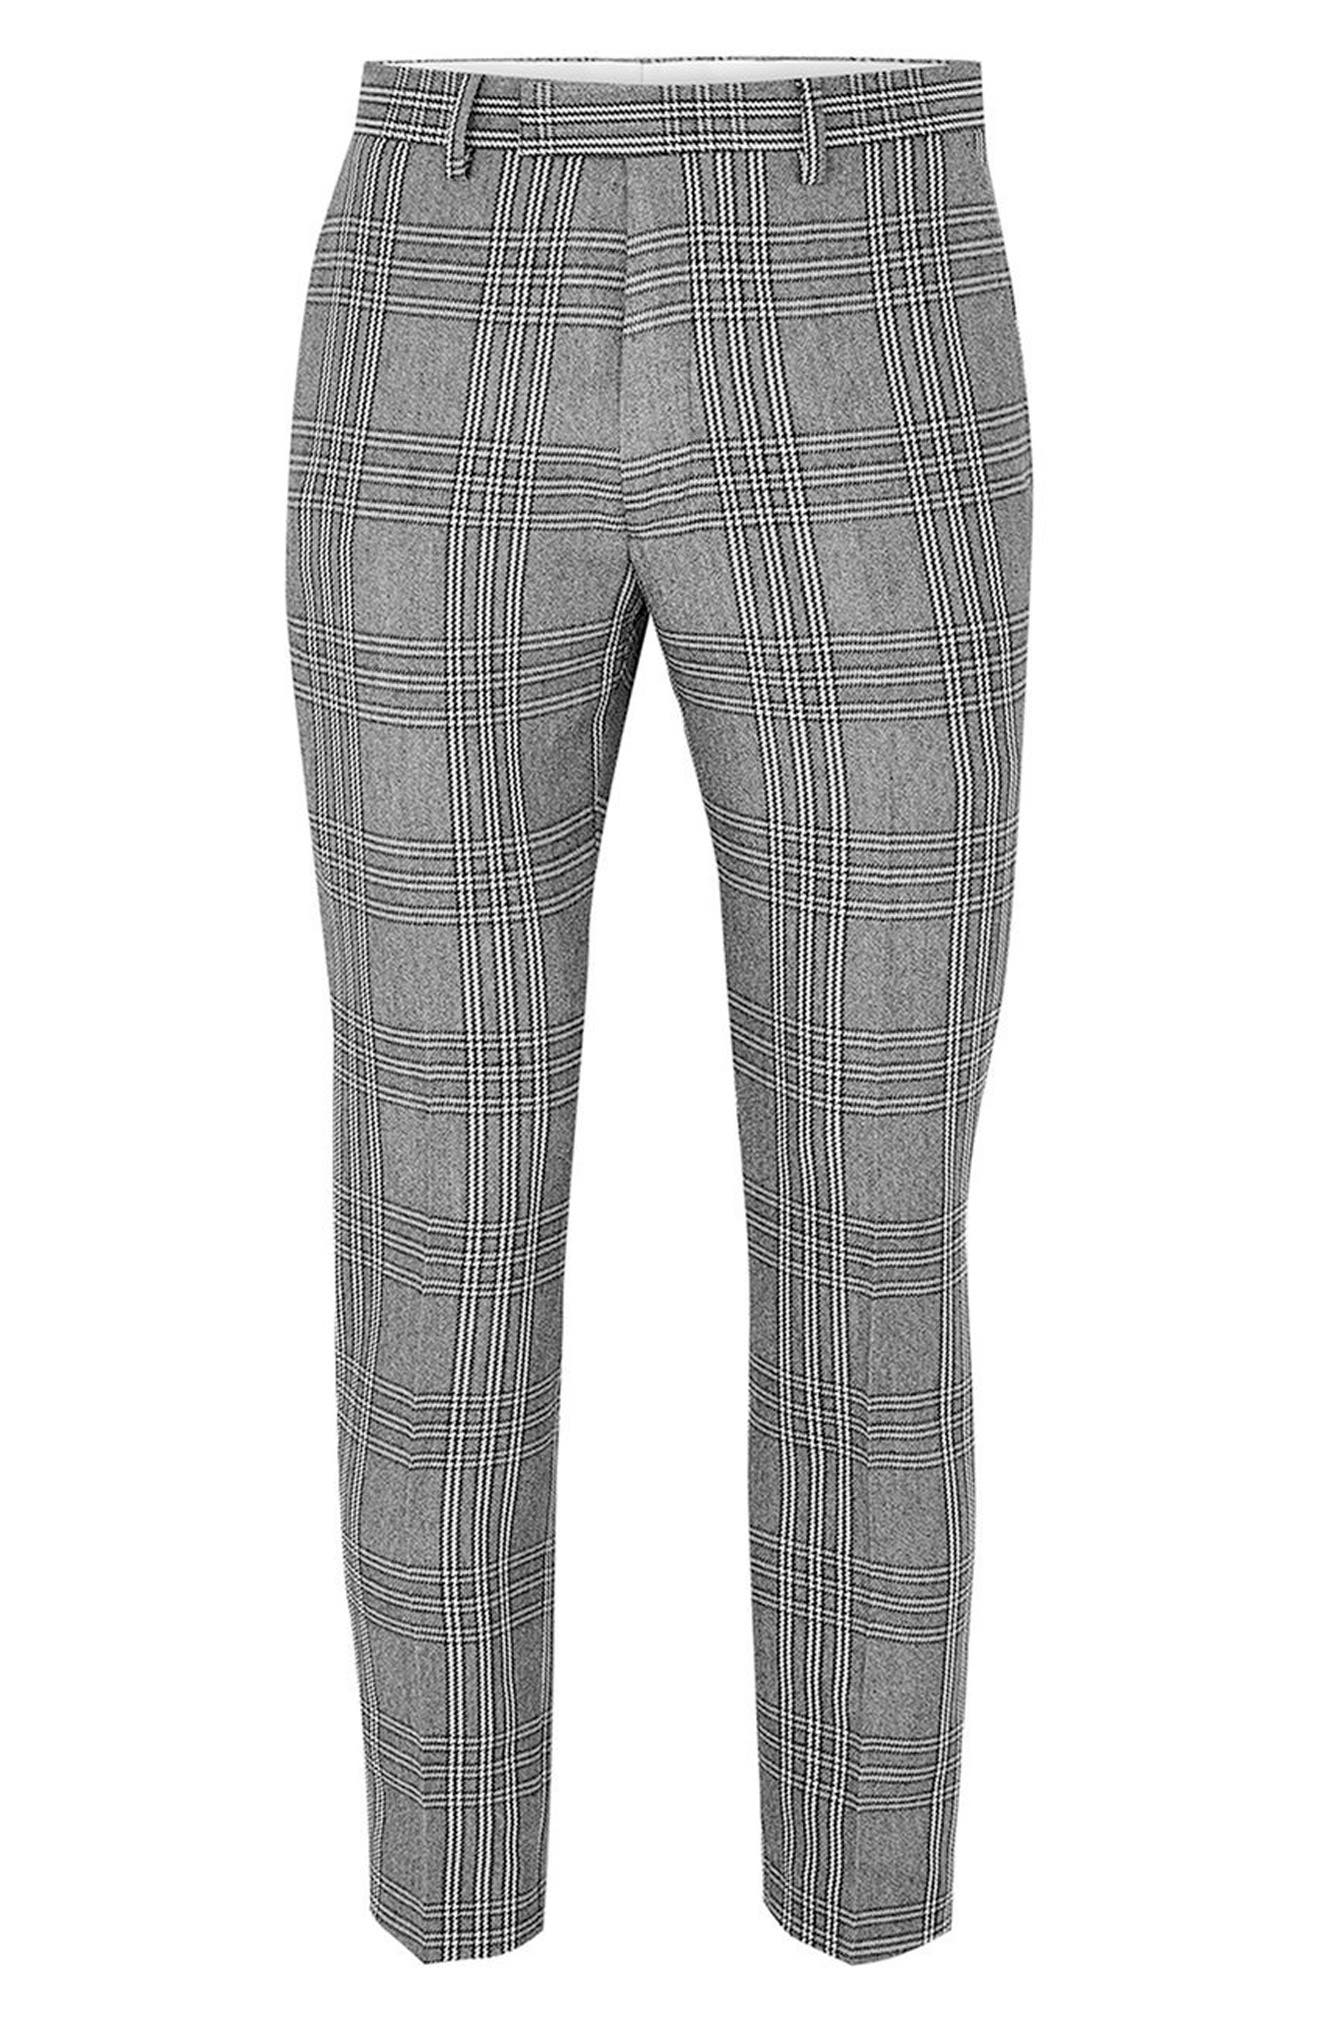 Skinny Fit Check Crop Trousers,                             Alternate thumbnail 4, color,                             020